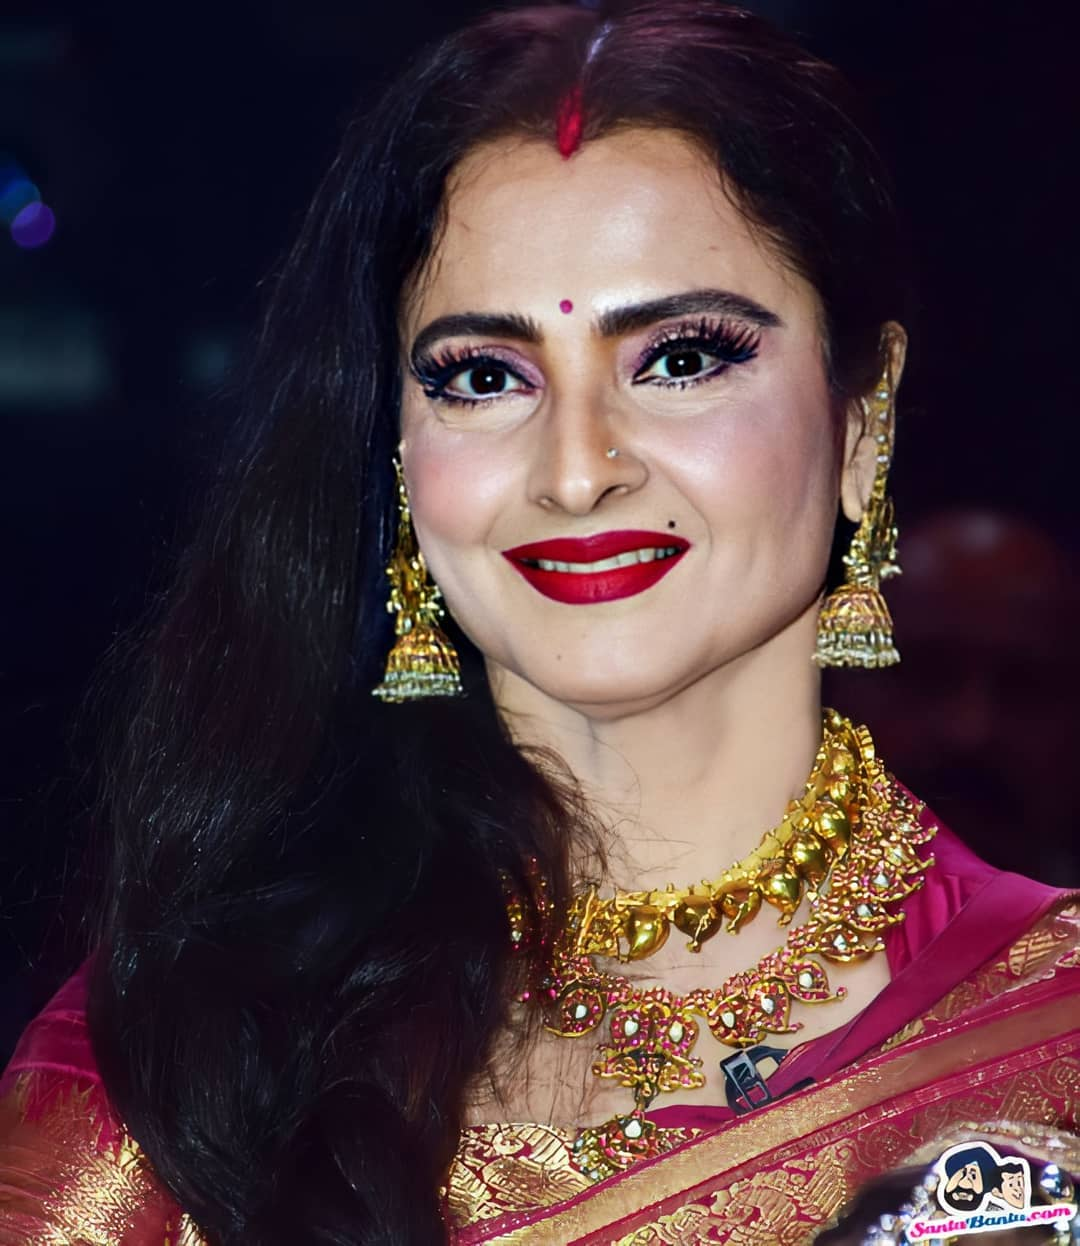 7 Indian Celebrities Who Are An Inspiration To Women 6